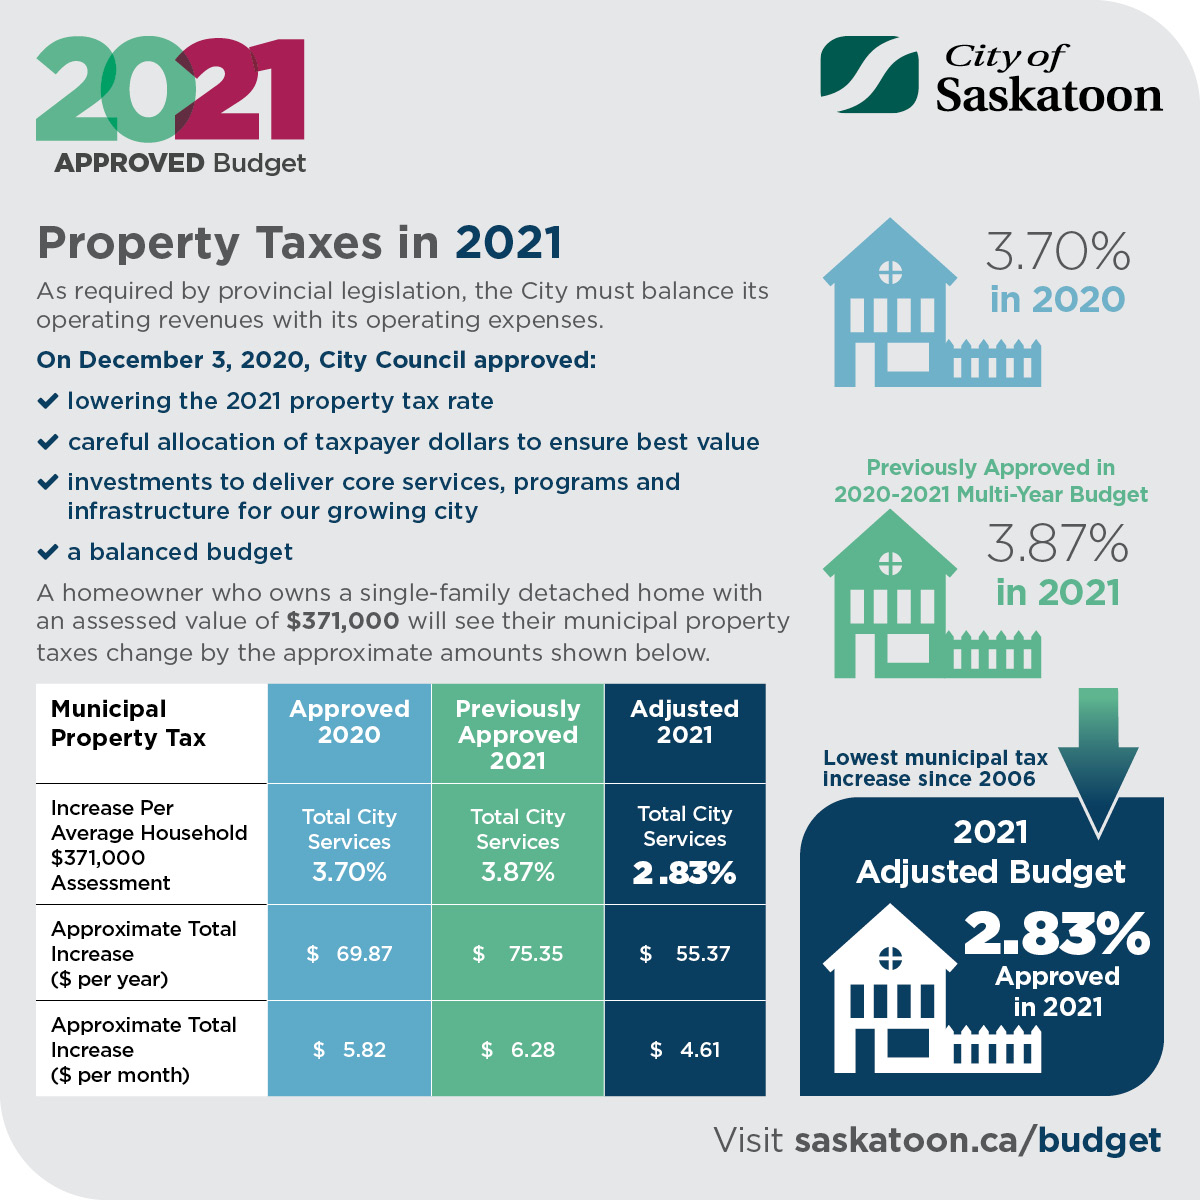 Graphic_2_2021_APPROVED_BUDGET_LOWER_PROPERTY_TAXES.jpg